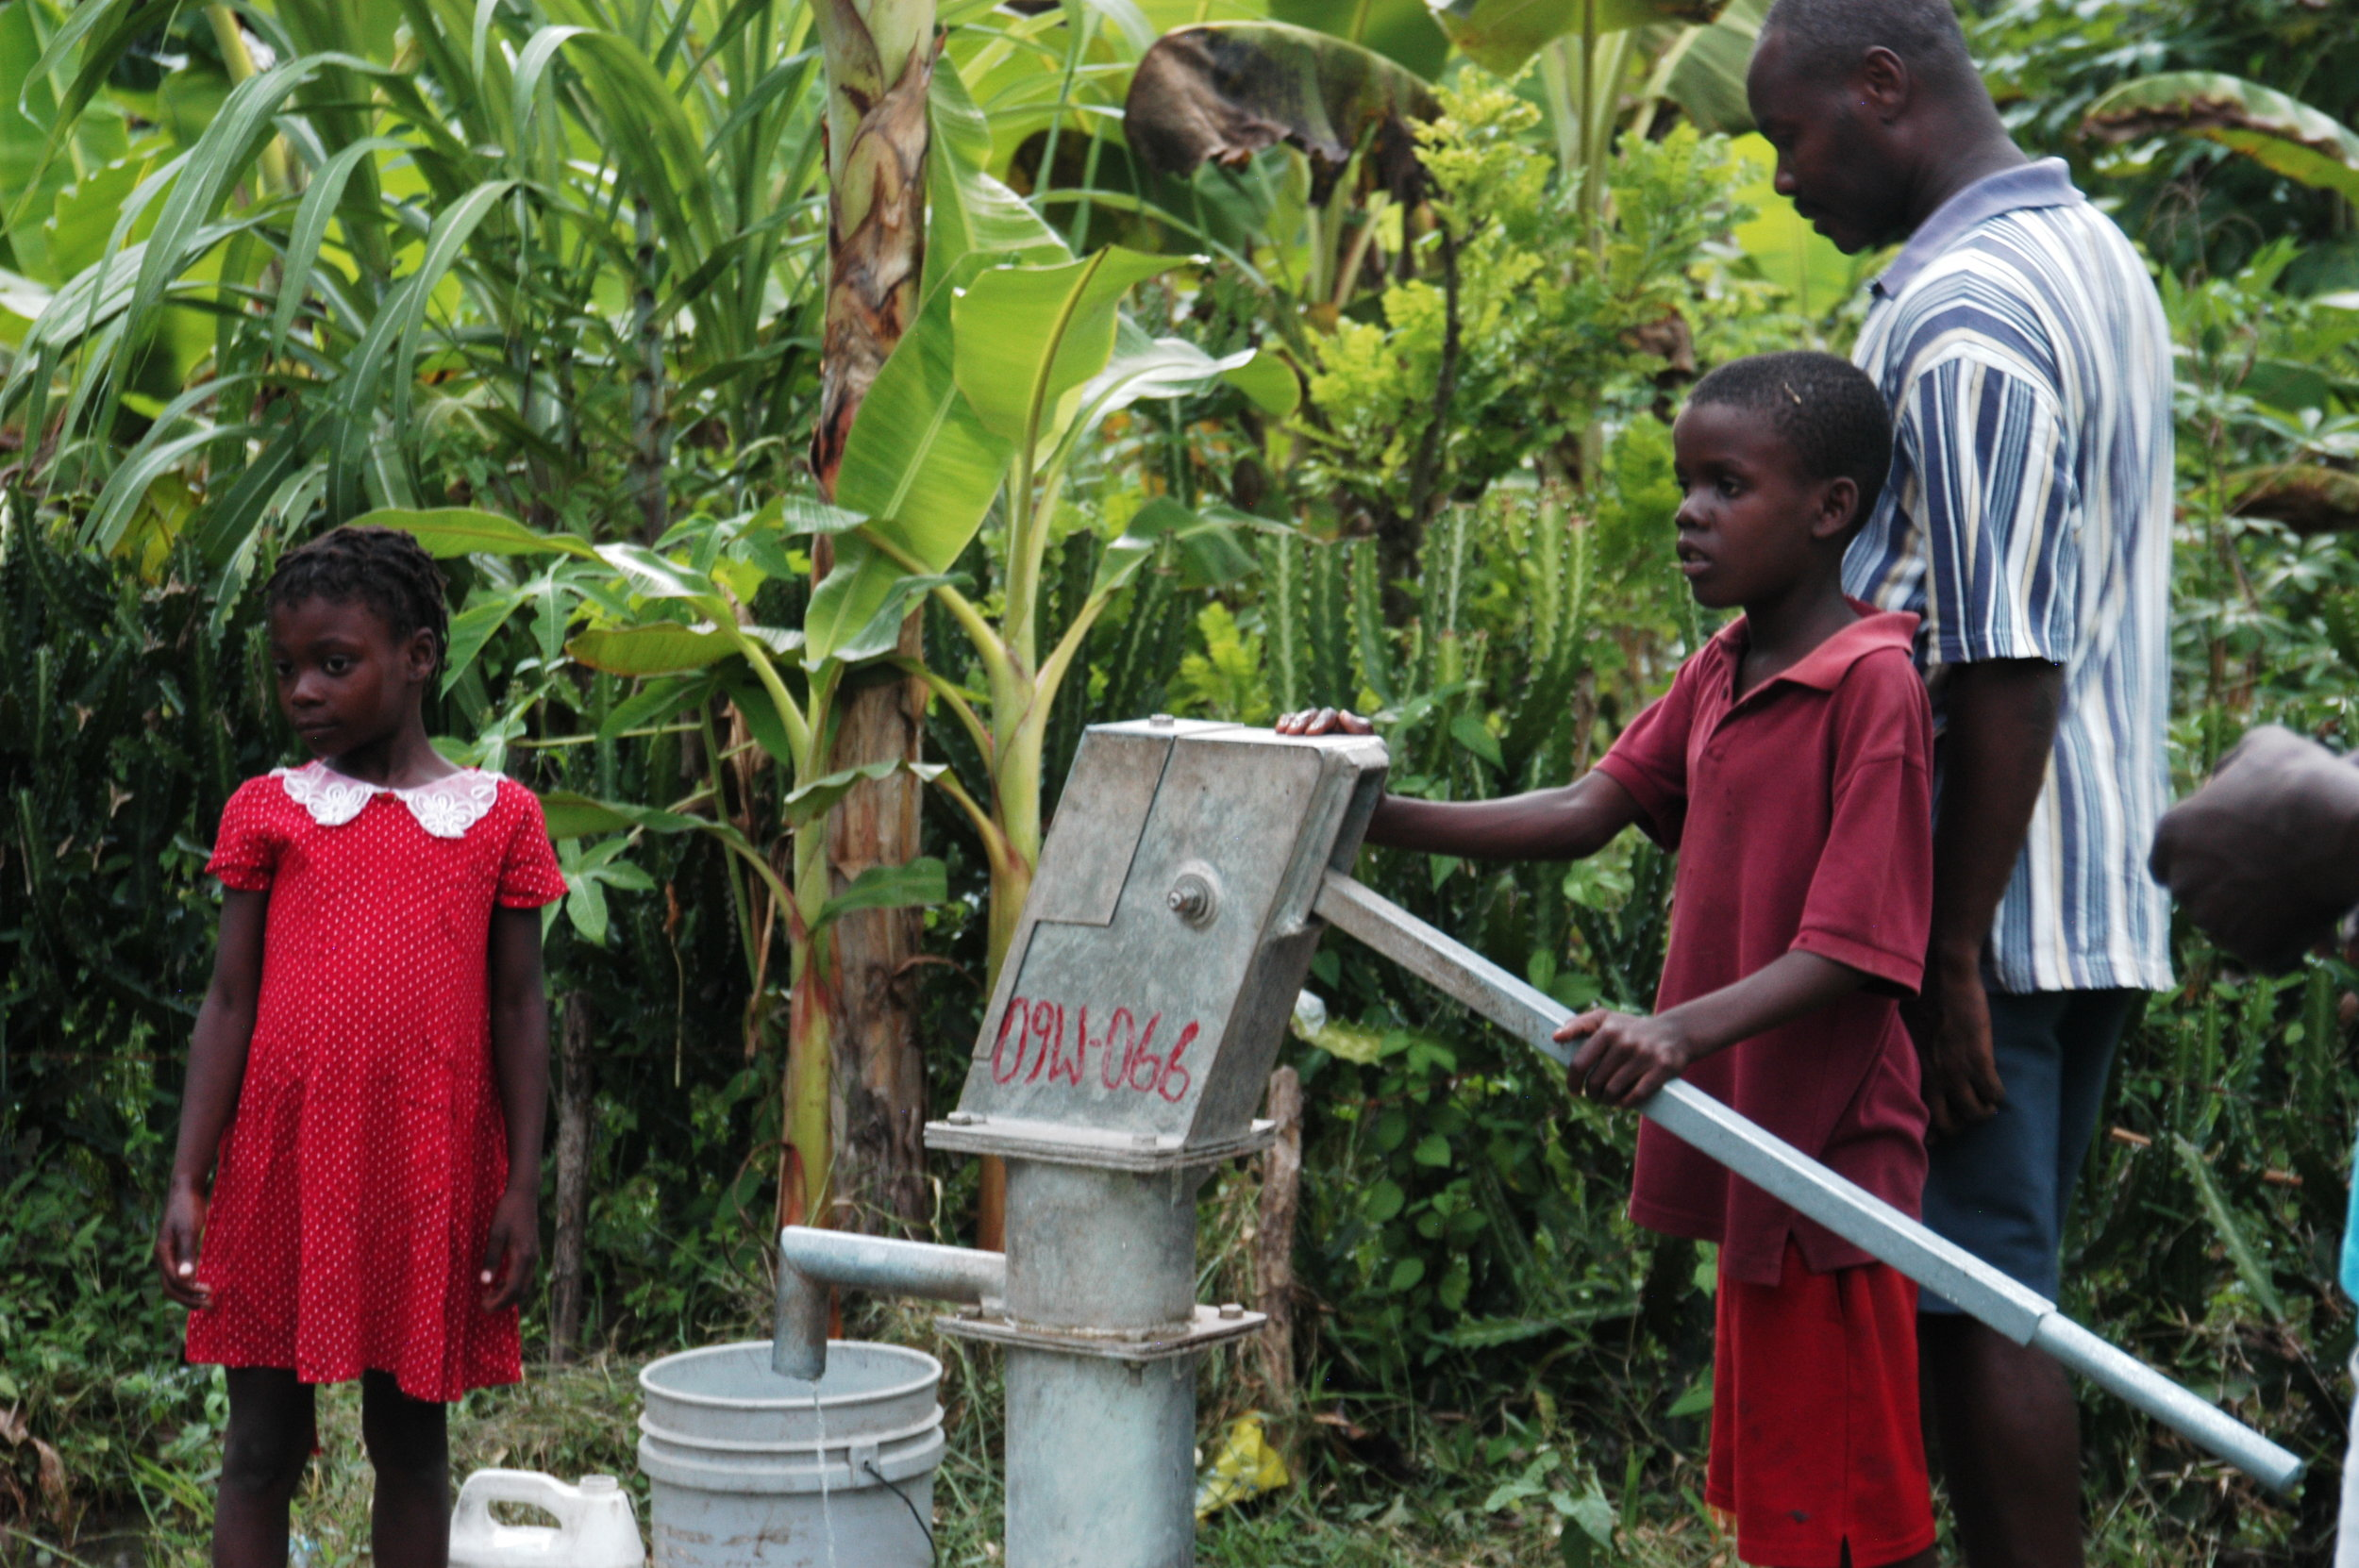 Father and son at a hand pump near Cap Haitien during the cholera epidemic.